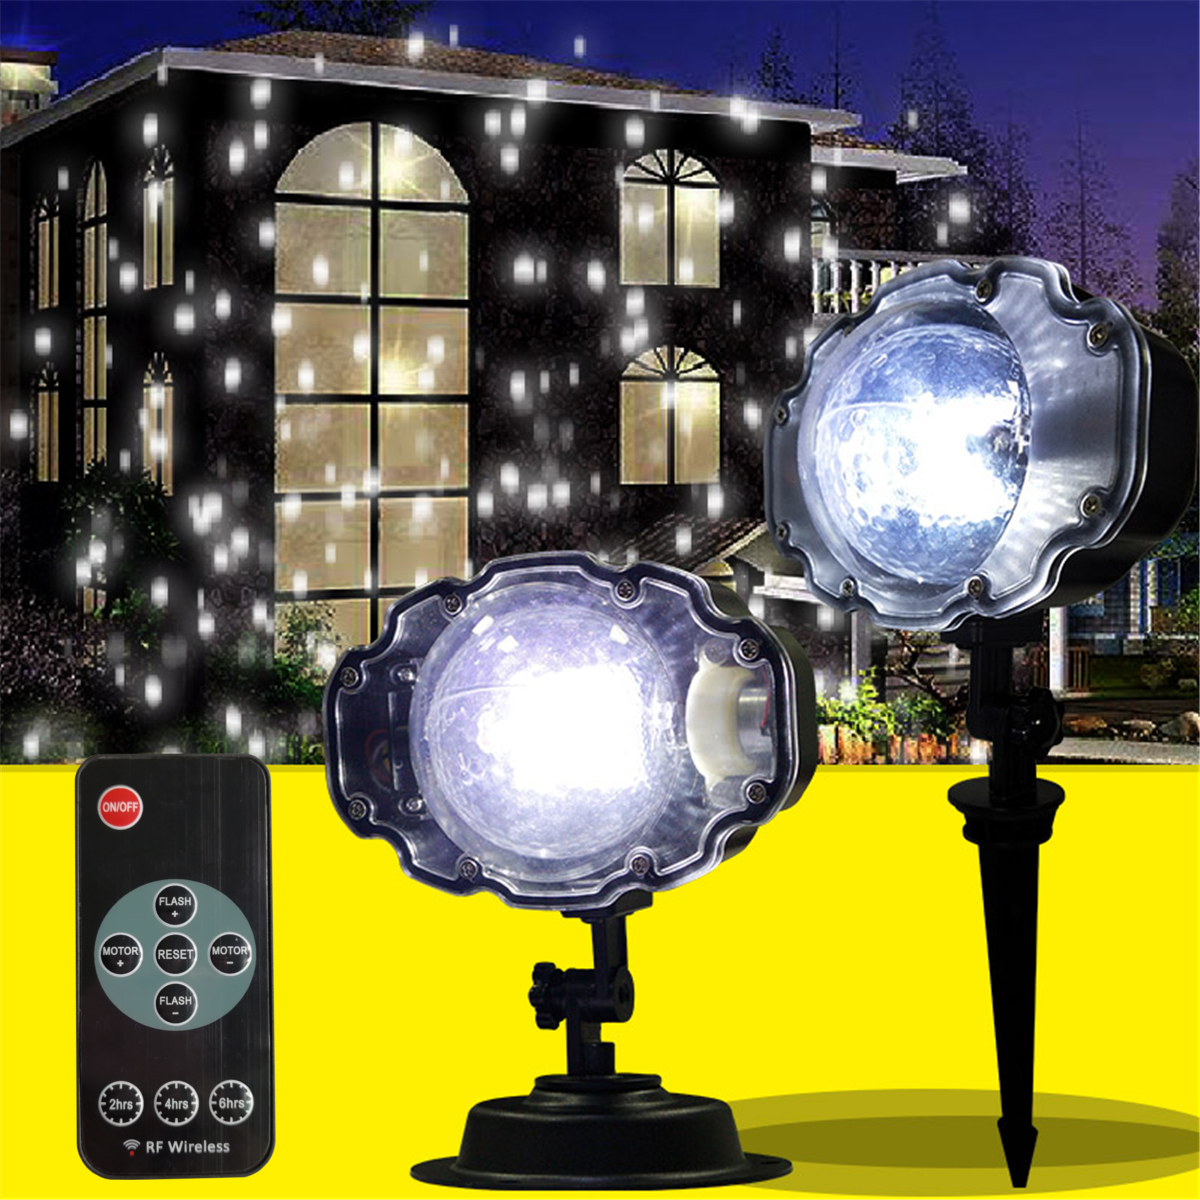 Outdoor Waterproof Laser Projector Snowflake LED Lamp Light Christmas Garden Home Decor Light